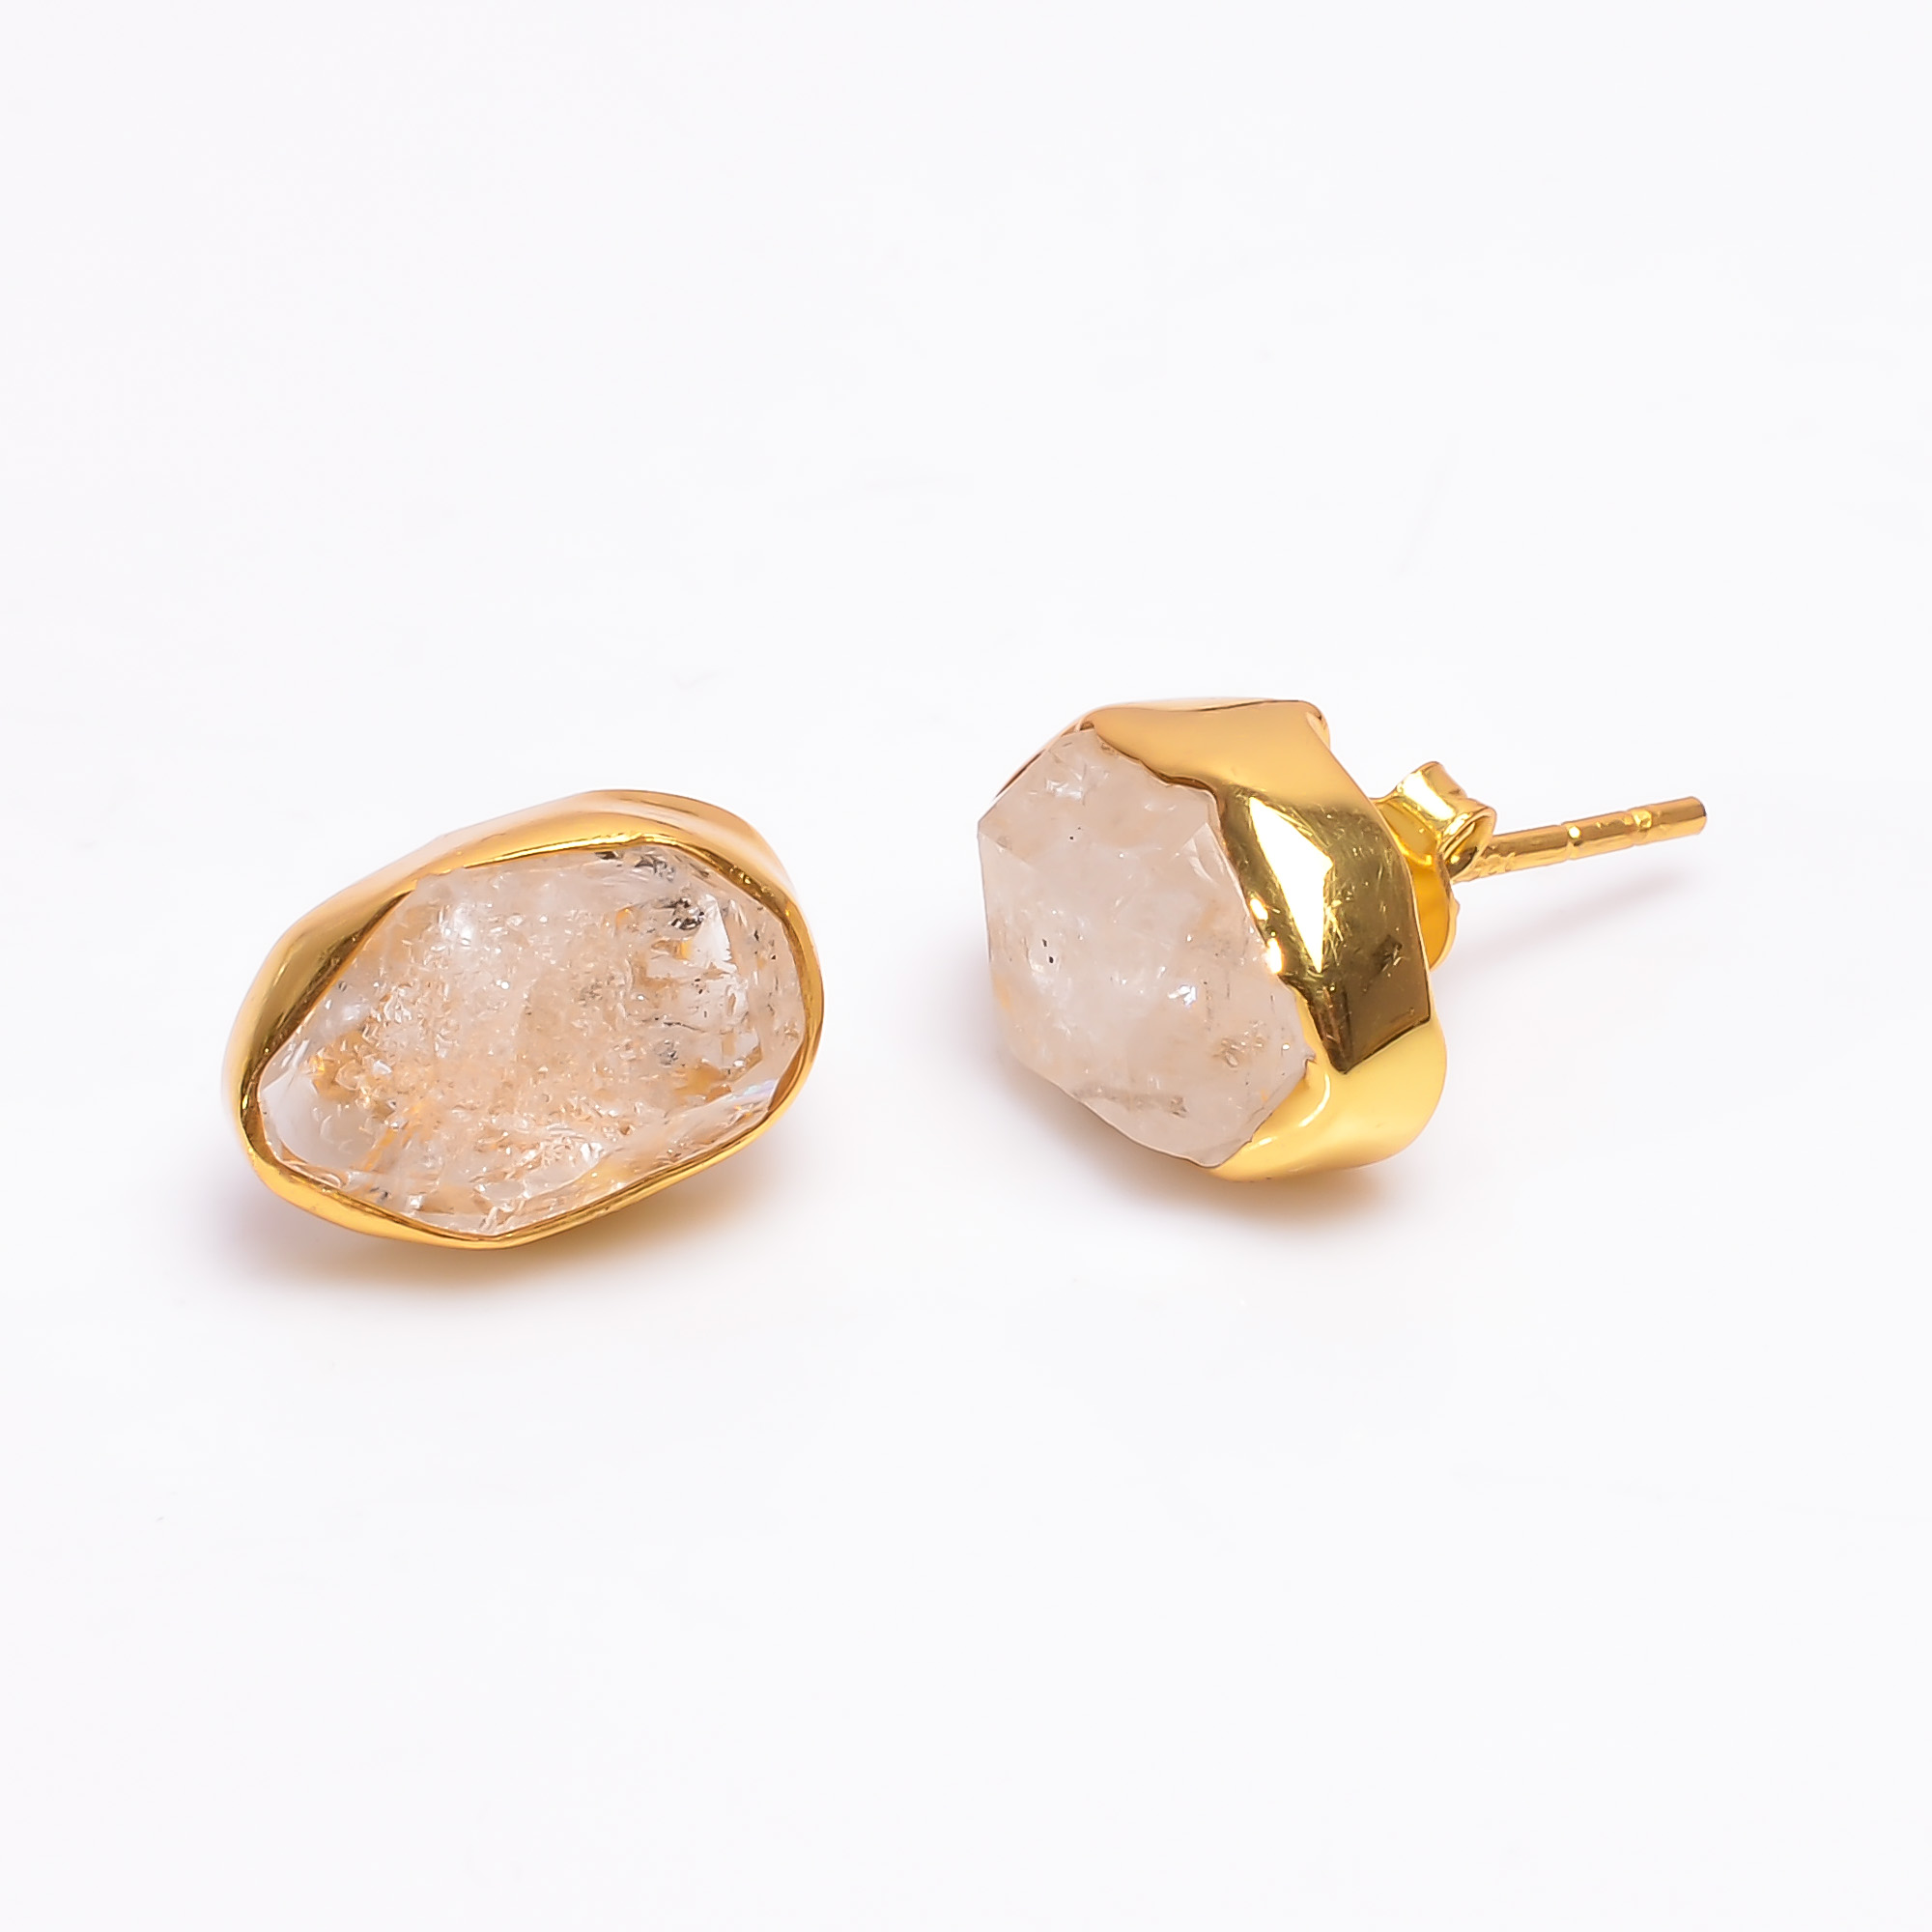 Natural Herkimer Diamond 925 Sterling Silver Gold Plated Stud Earrings